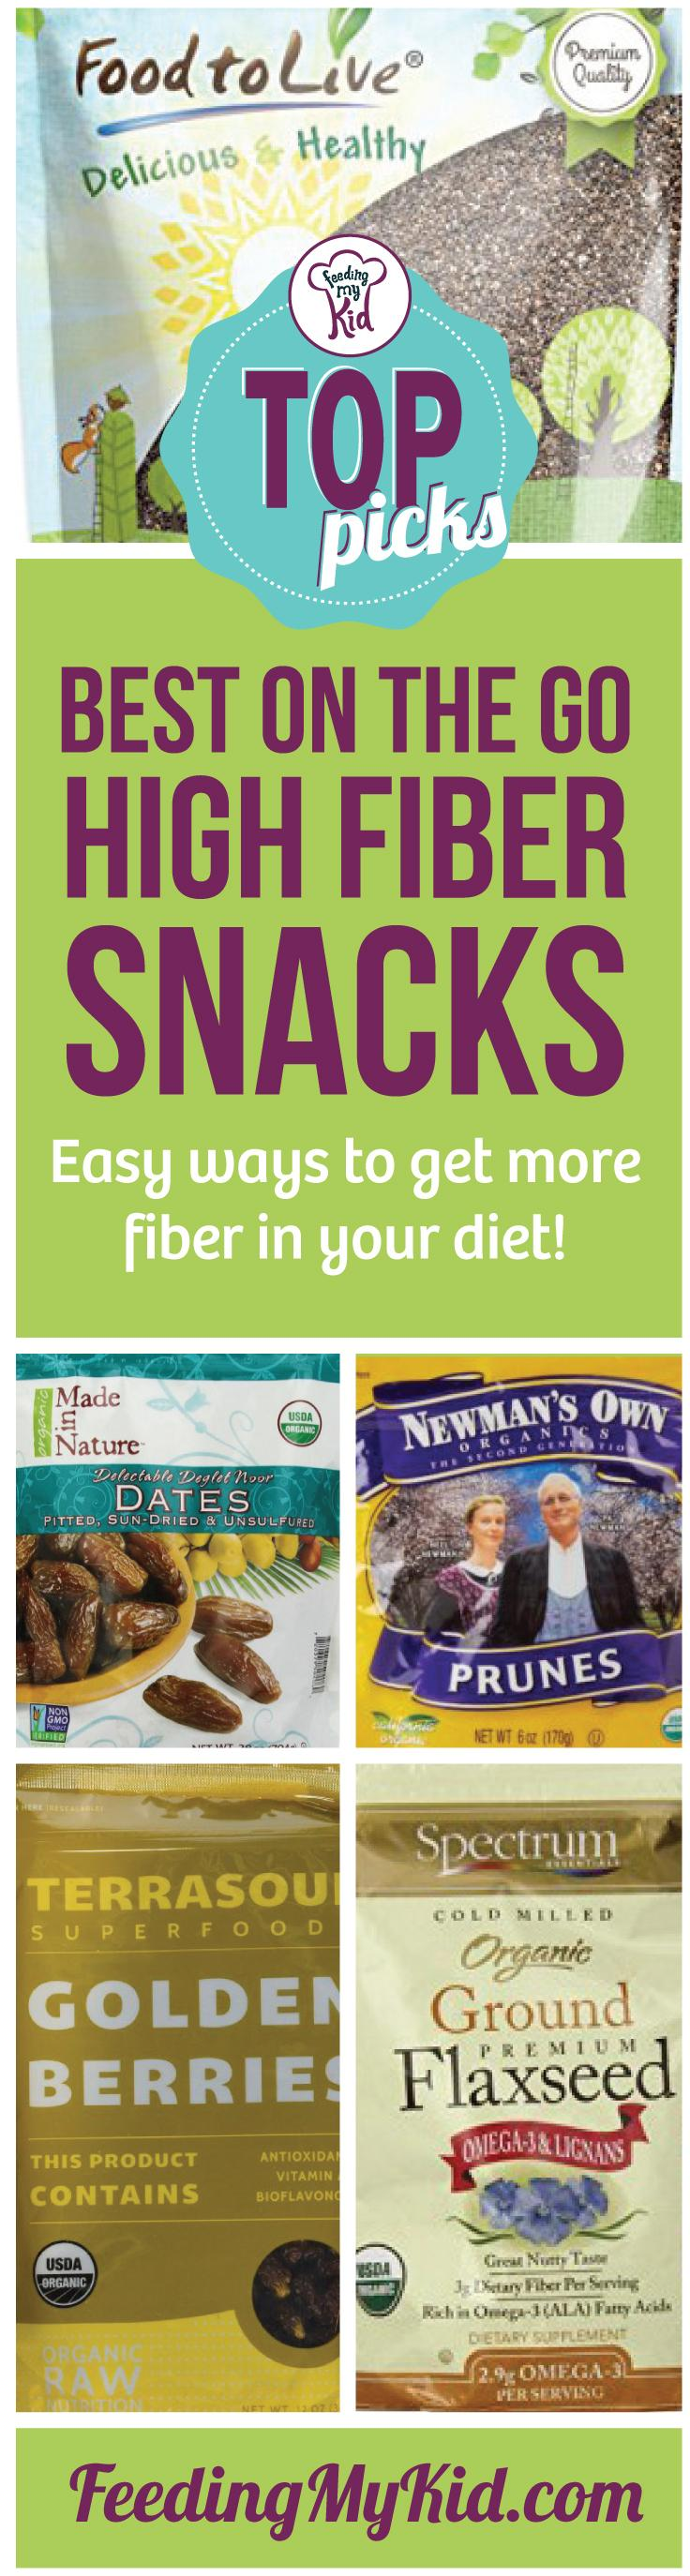 These are our top picks for high fiber snacks on the go! We curated a number of high fiber snack foods and high fiber add-ins. Feeding My Kid is filled with all the information you need about how to raise your kids, from healthy tips to nutritious recipes. #FeedingMyKid #toppicks #fiber #constipation #jighfiber #fiberfoods #snacks #fibersnacks